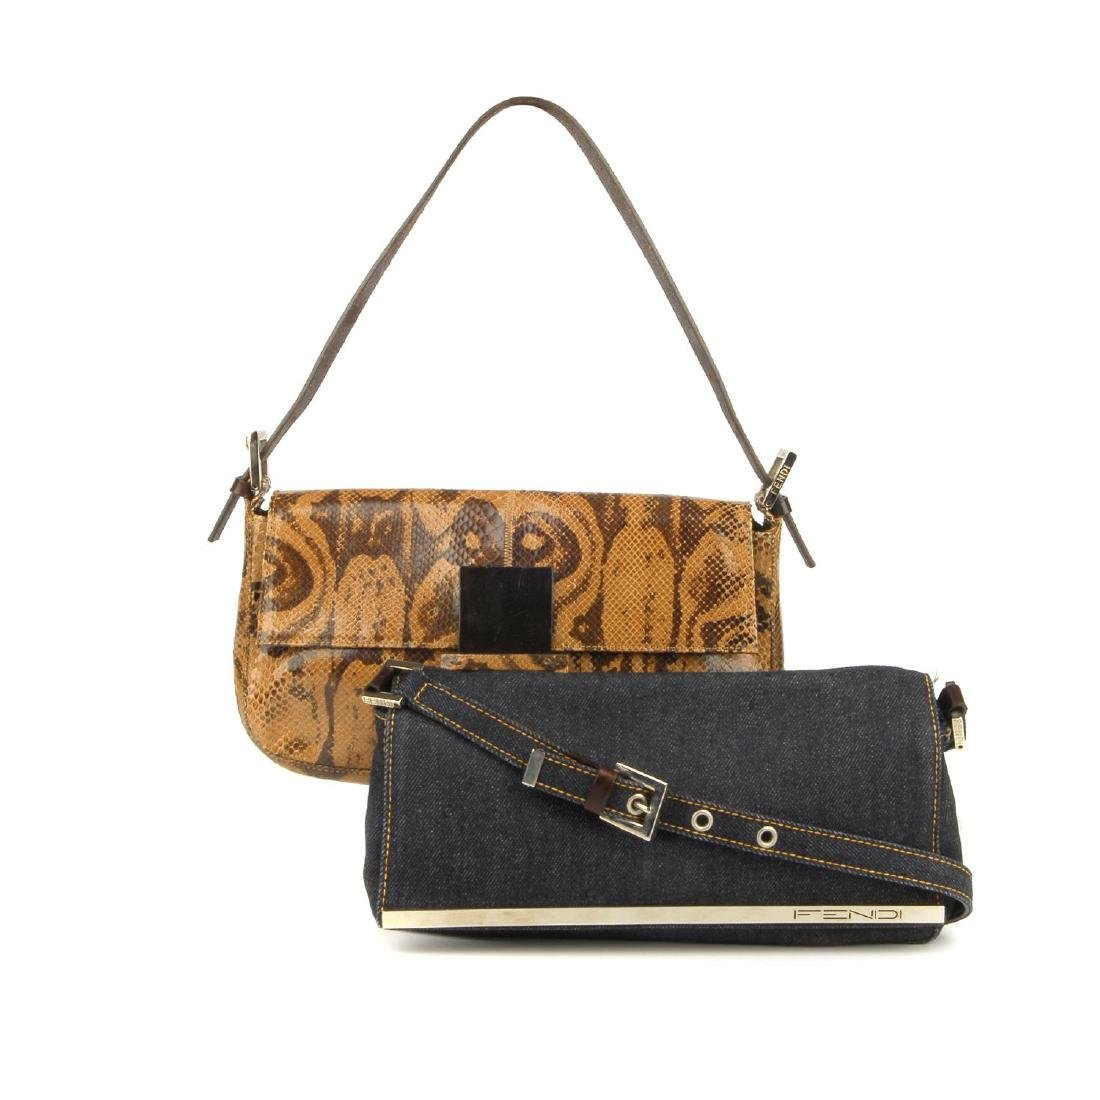 FENDI - two baguette handbags. The first, designed with